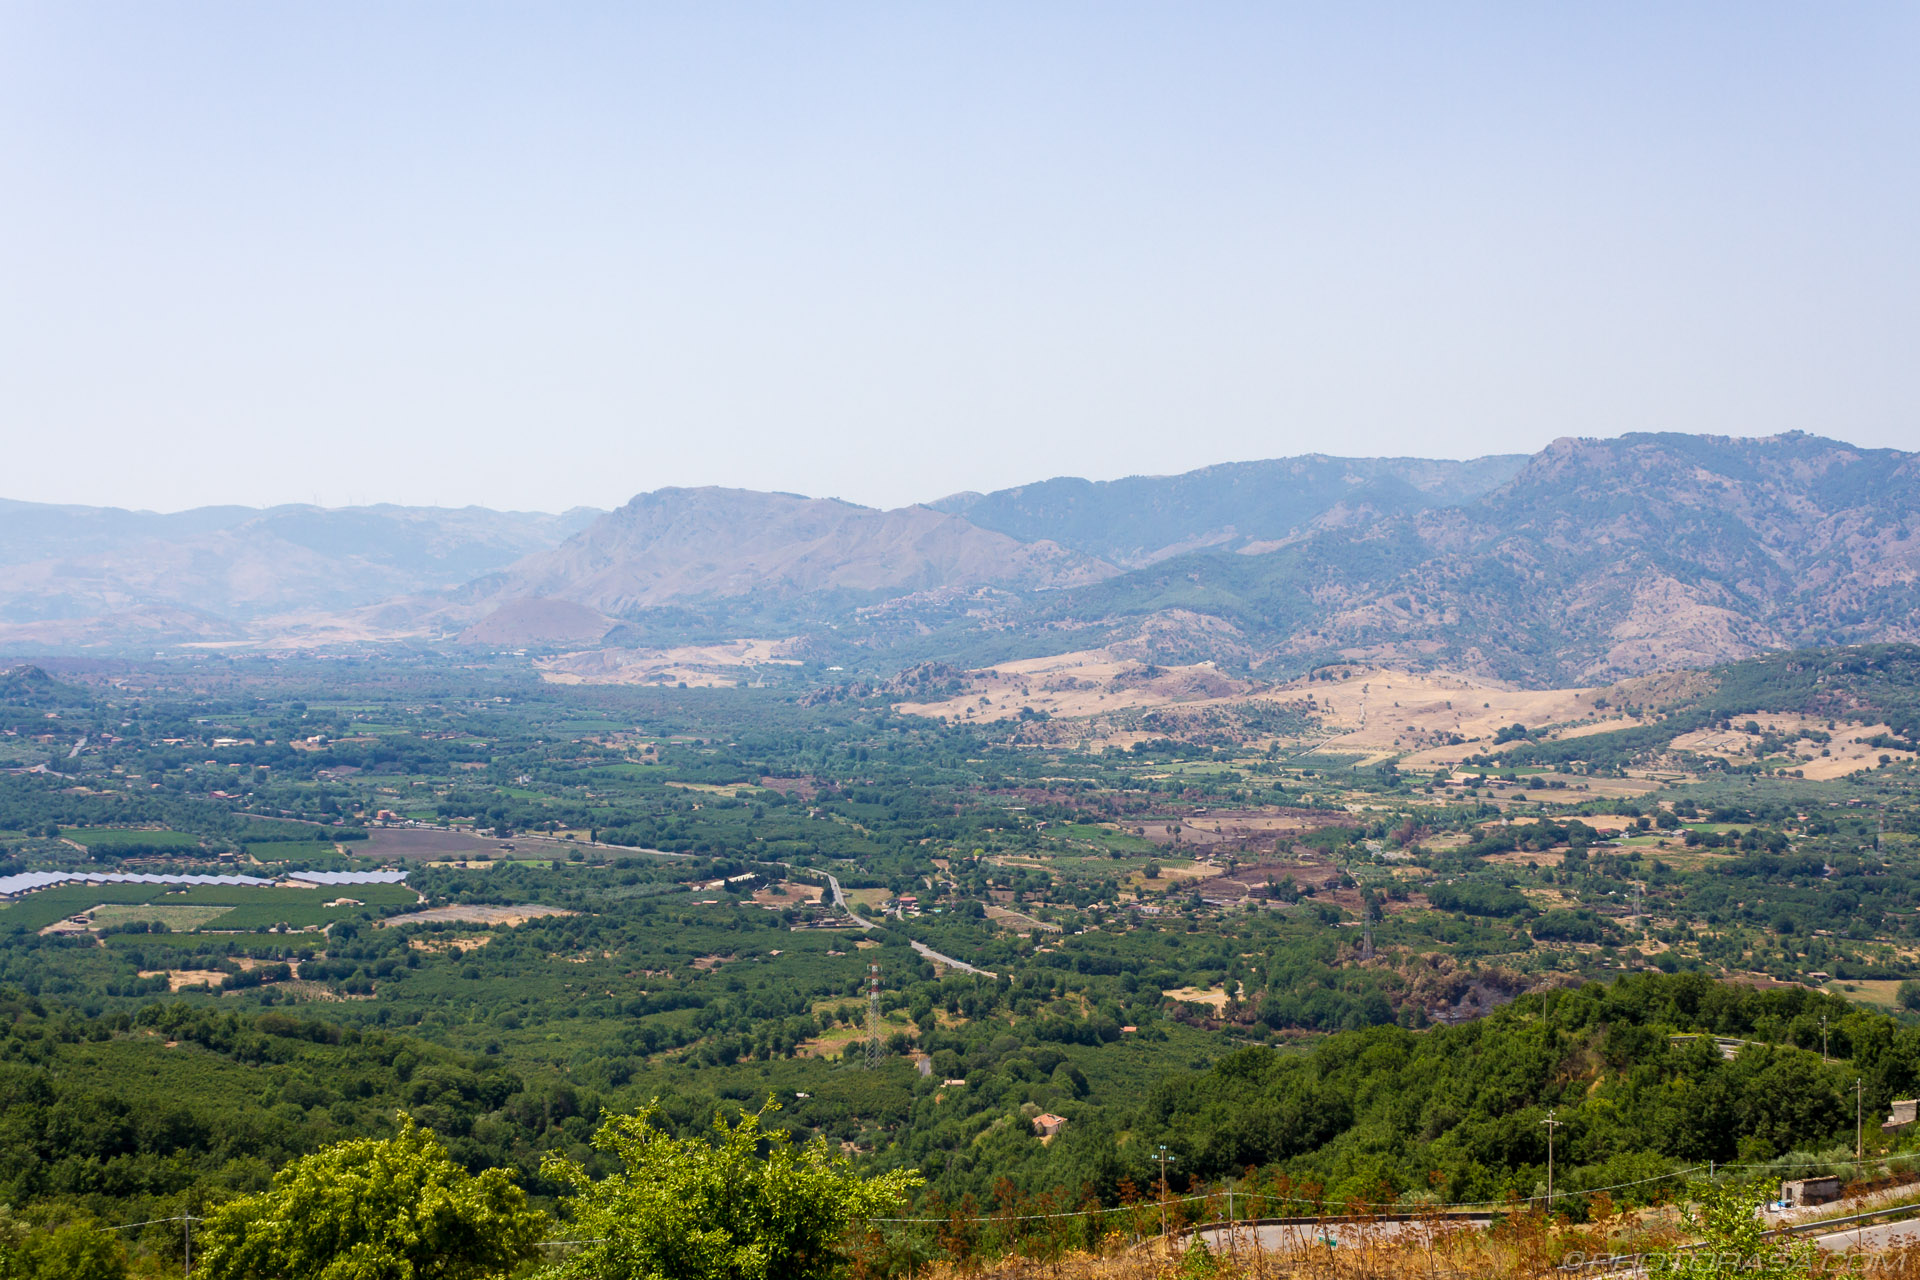 http://photorasa.com/sicilian-landscapes/view-of-east-sicily-from-castiglione-di-sicilia/